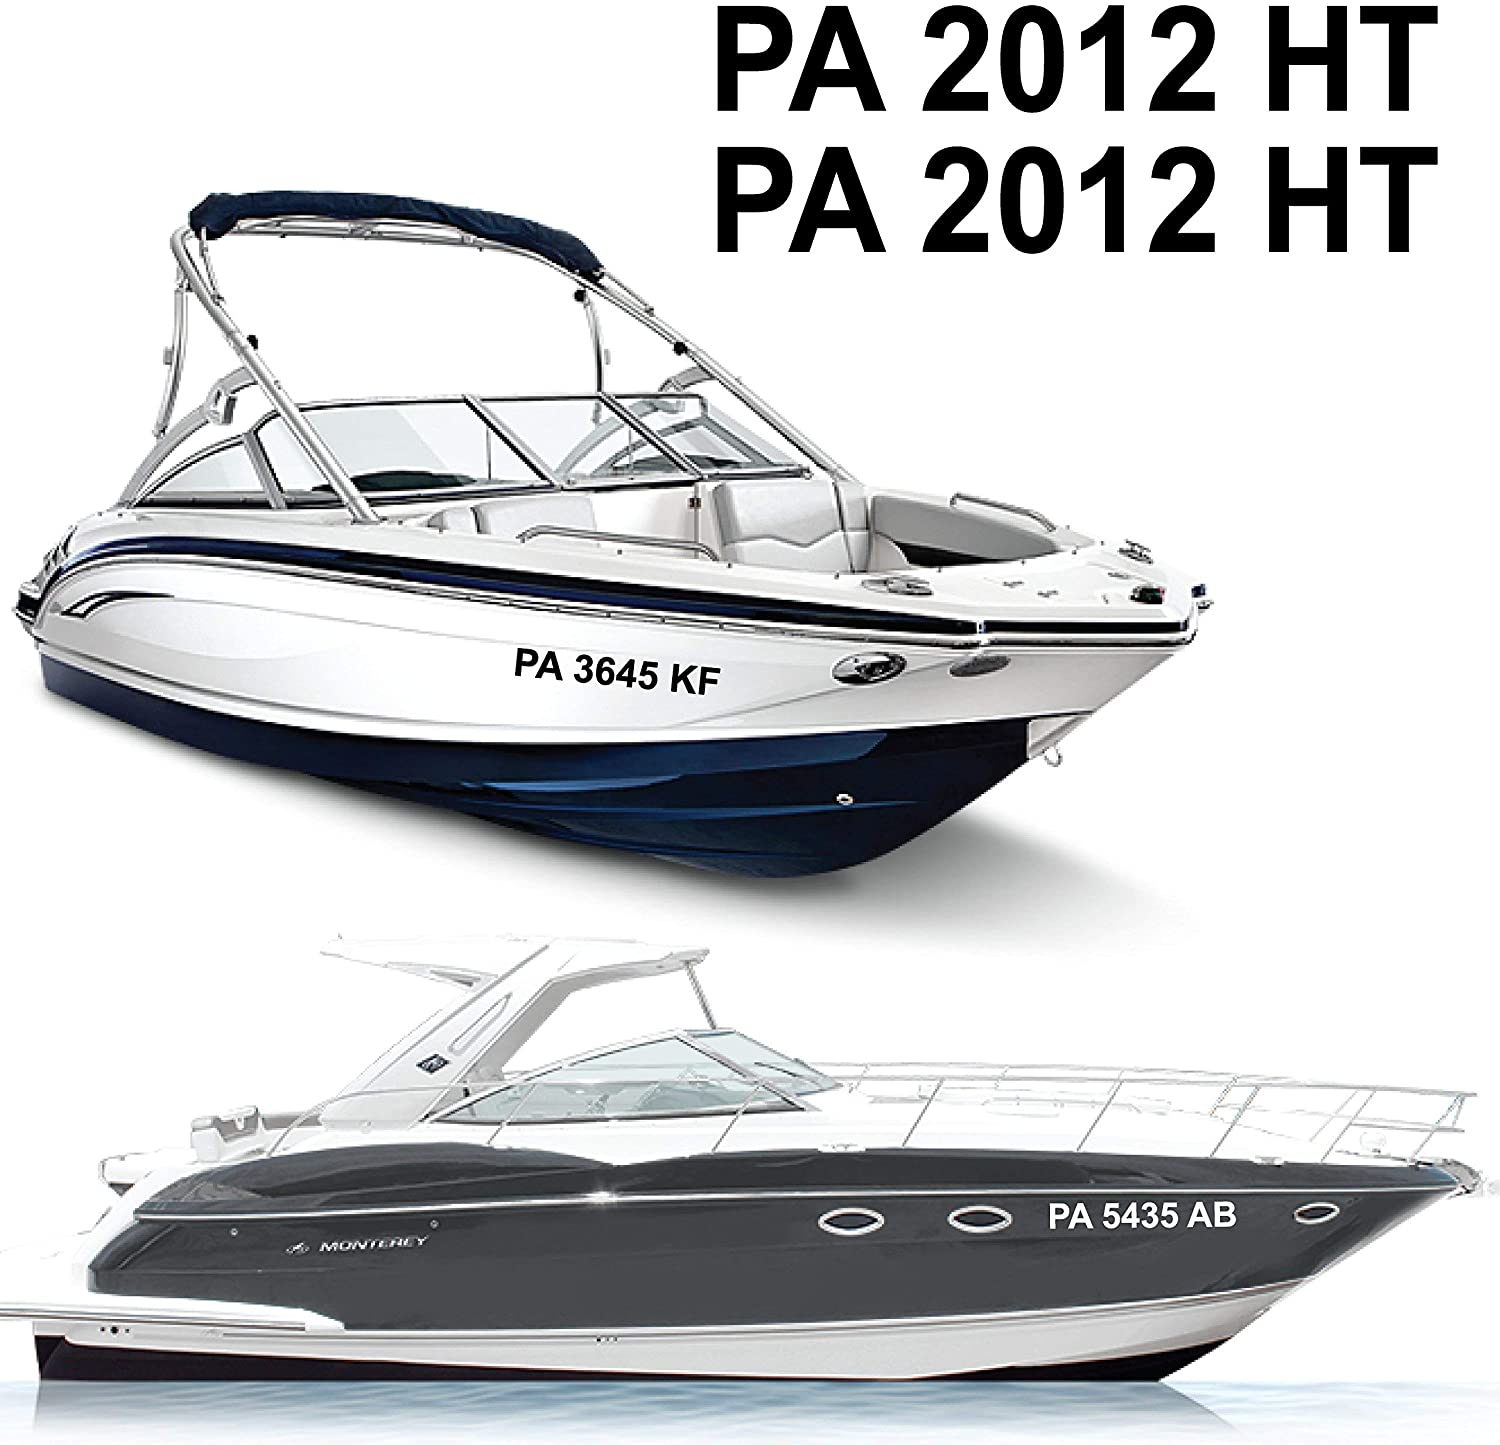 1060 Graphics Reflective Boat Registration Numbers - Custom Made To Order In Any Text, Font, Color, Size (4